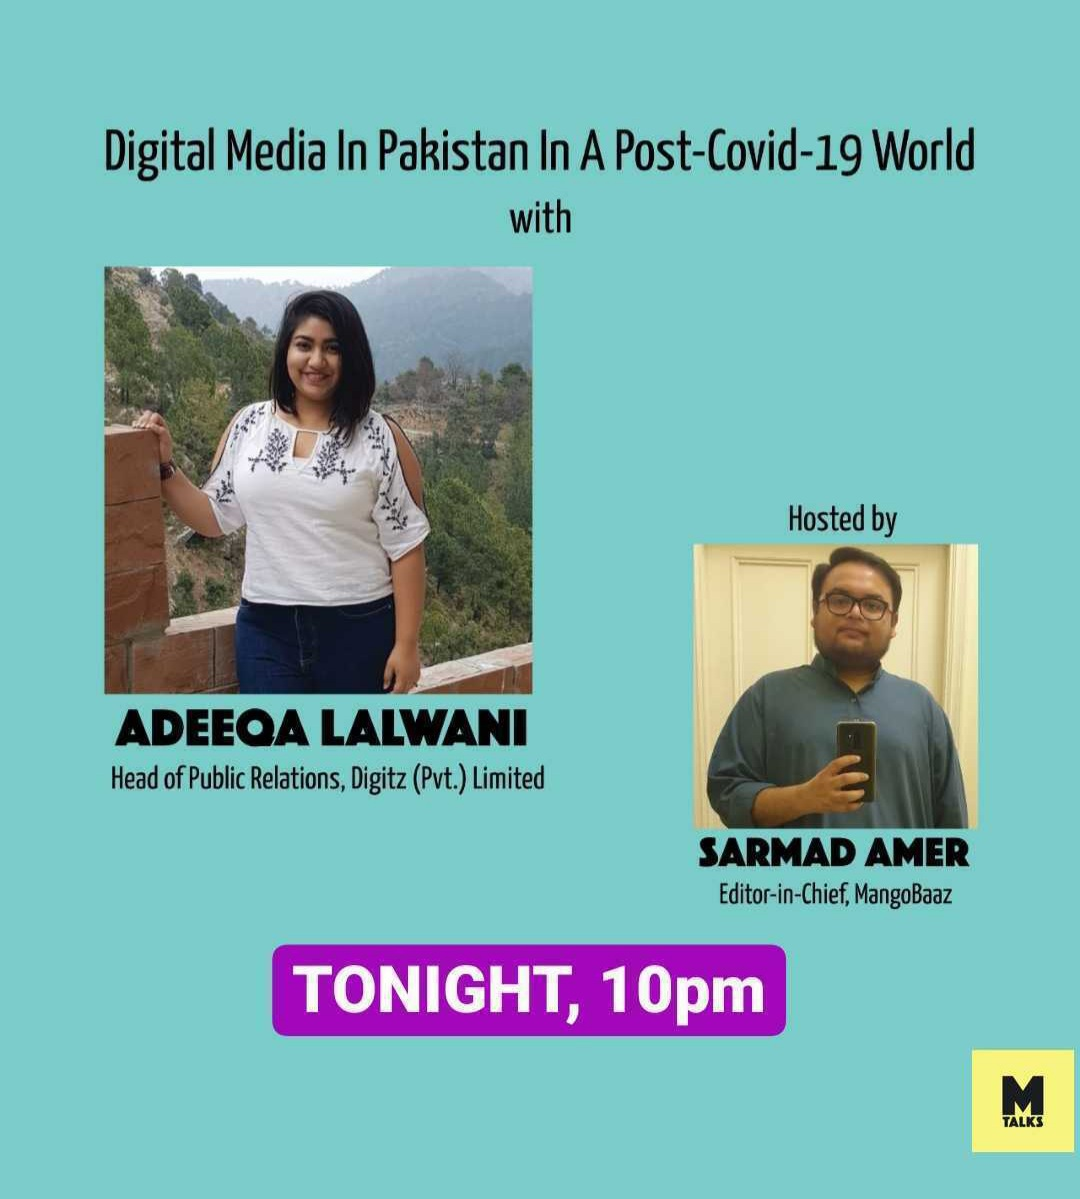 Catch me live with @MangoBaaz tonight, discussing Digital Media in Pakistan In a Post Covid-19 World! Excited to share how its changed the way digital is perceived! 10 pm, YouTube live! https://t.co/kyIfRhy1KE https://t.co/nGmehoxHuD